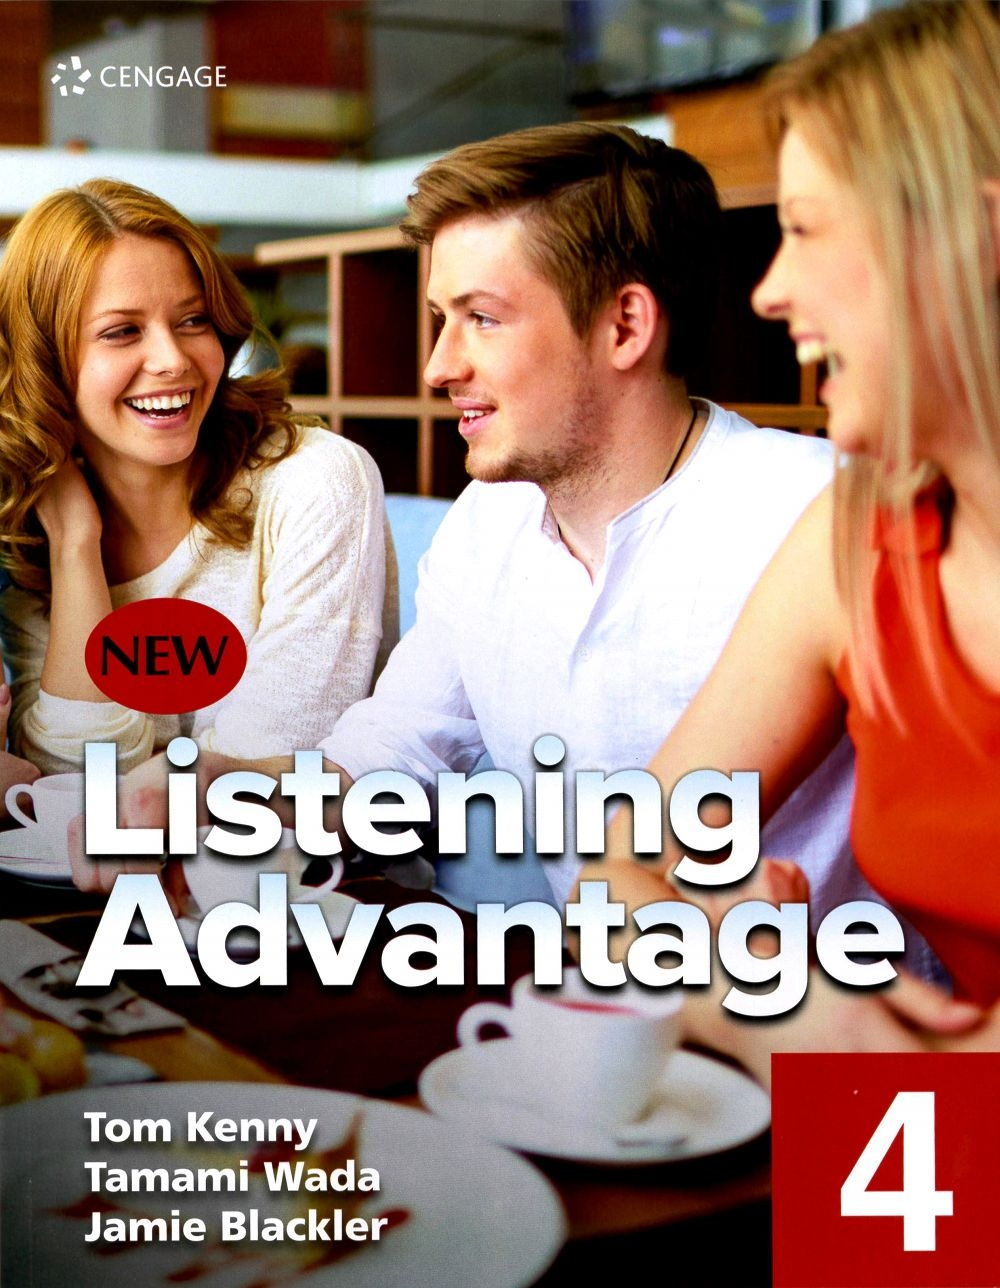 New Listening Advantage 4